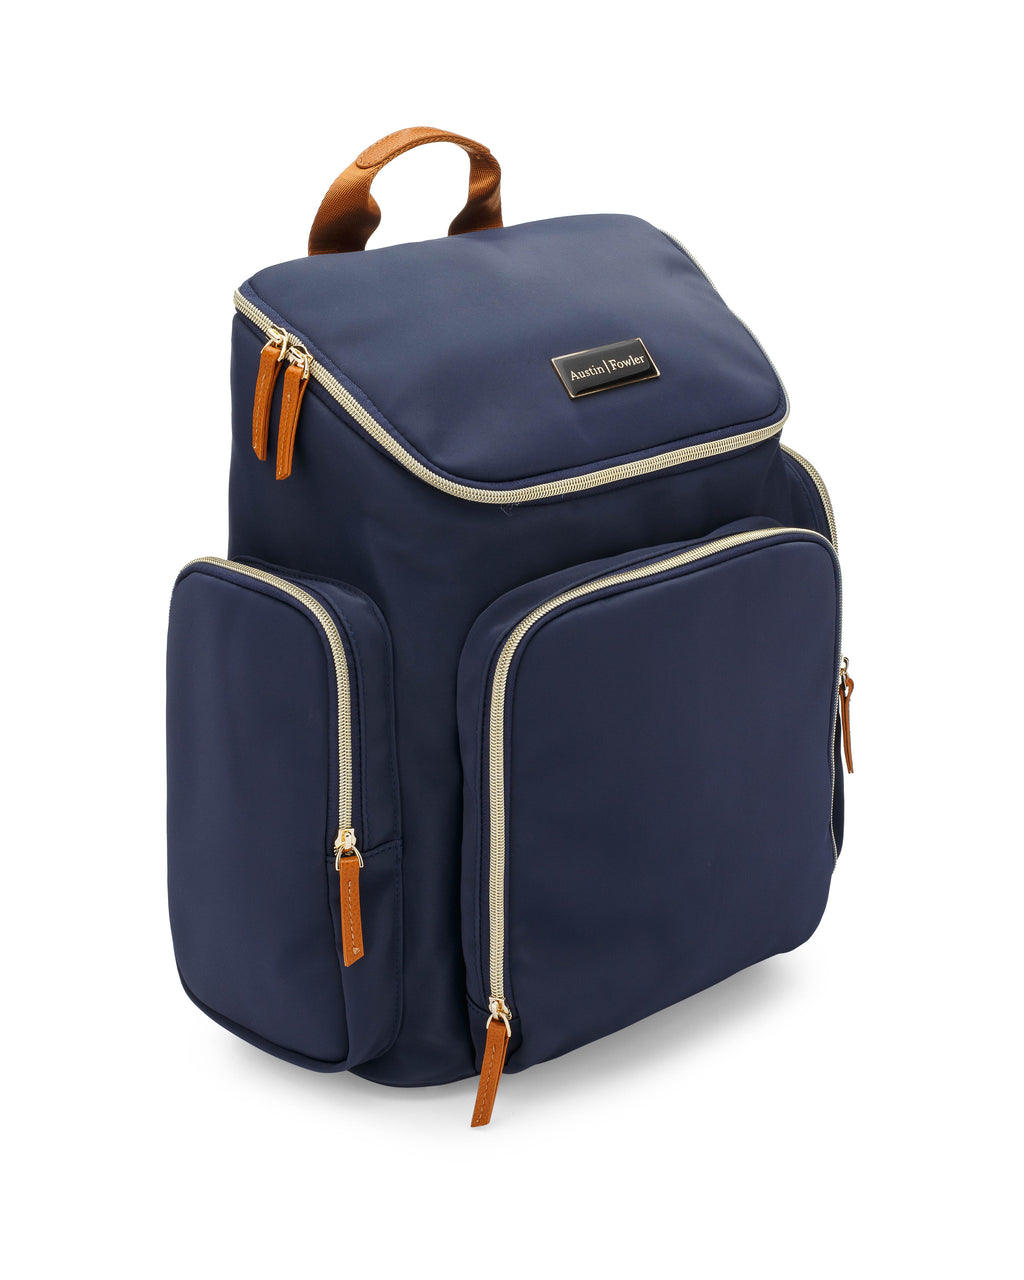 francesca backpack in navy blue